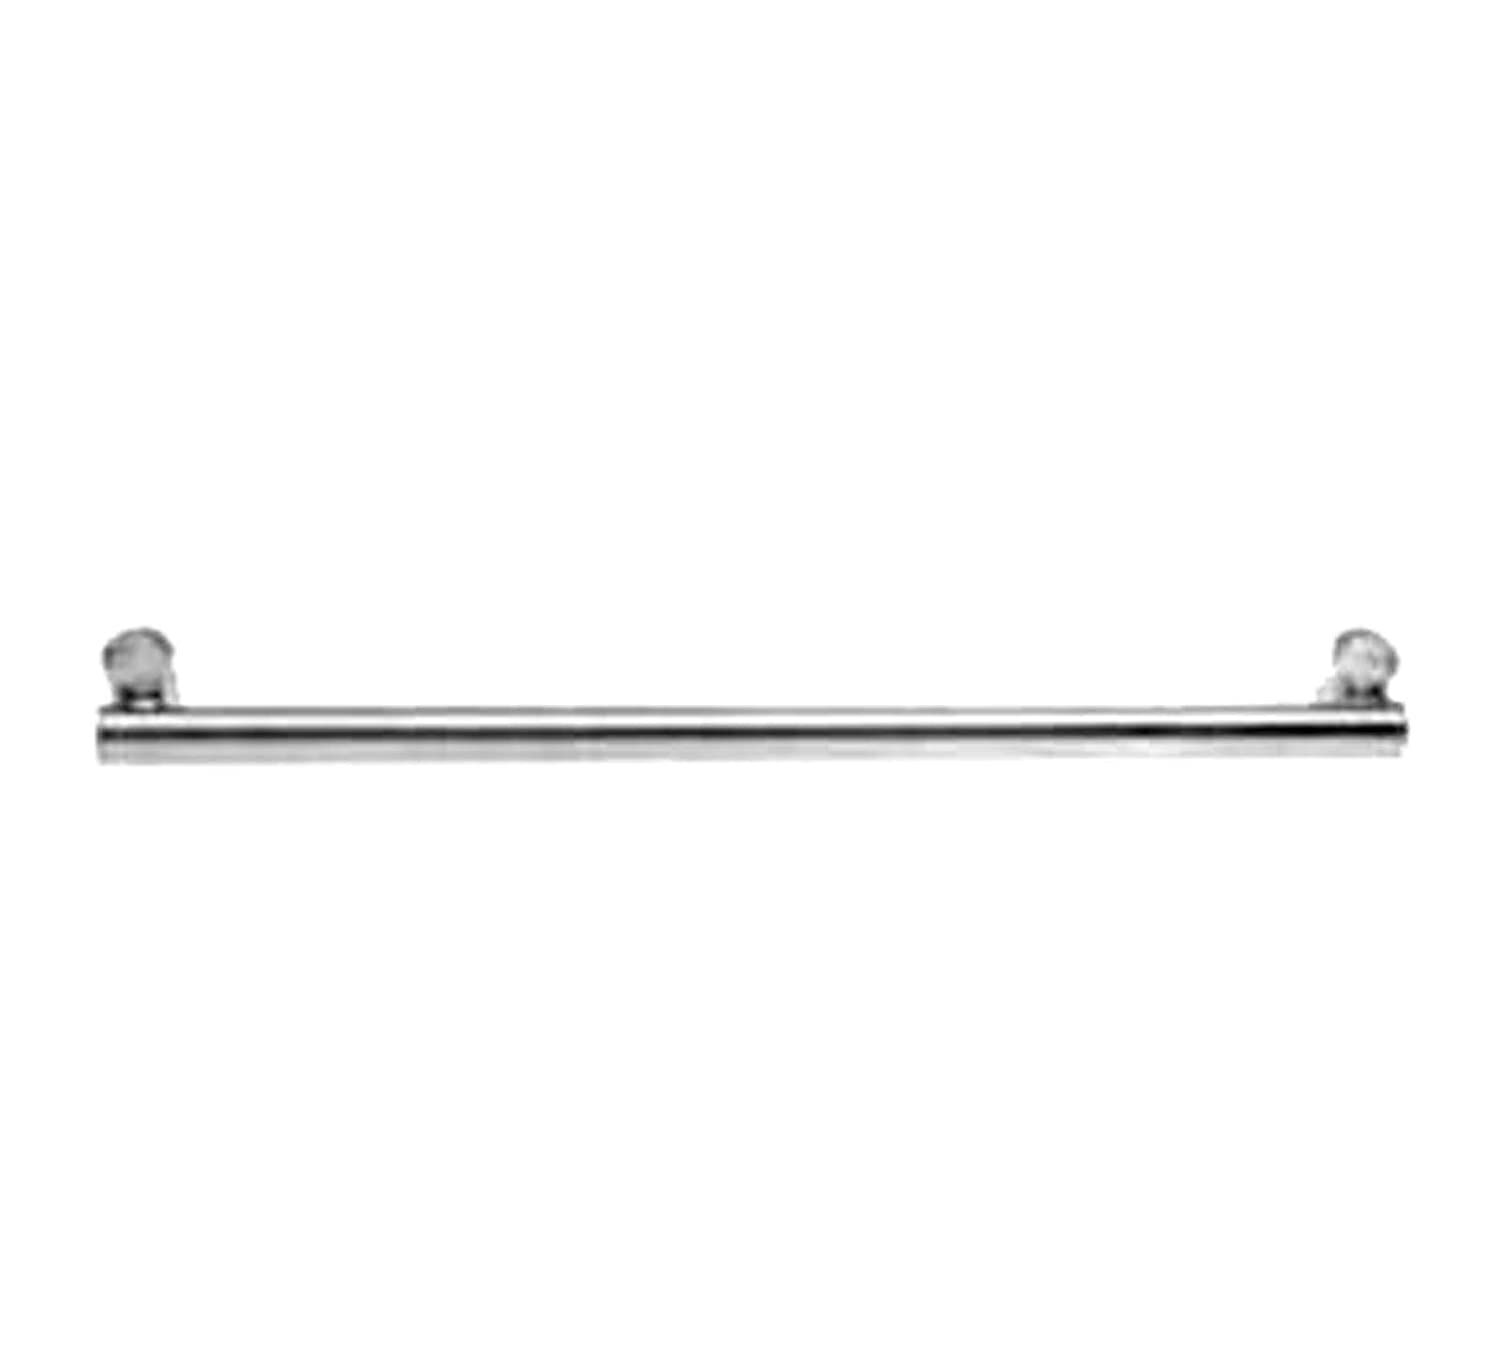 Metro (InterMetro) / Emerson - PH24NS - Push Handle, 24 in. L x 1 in. W x 1 in. H